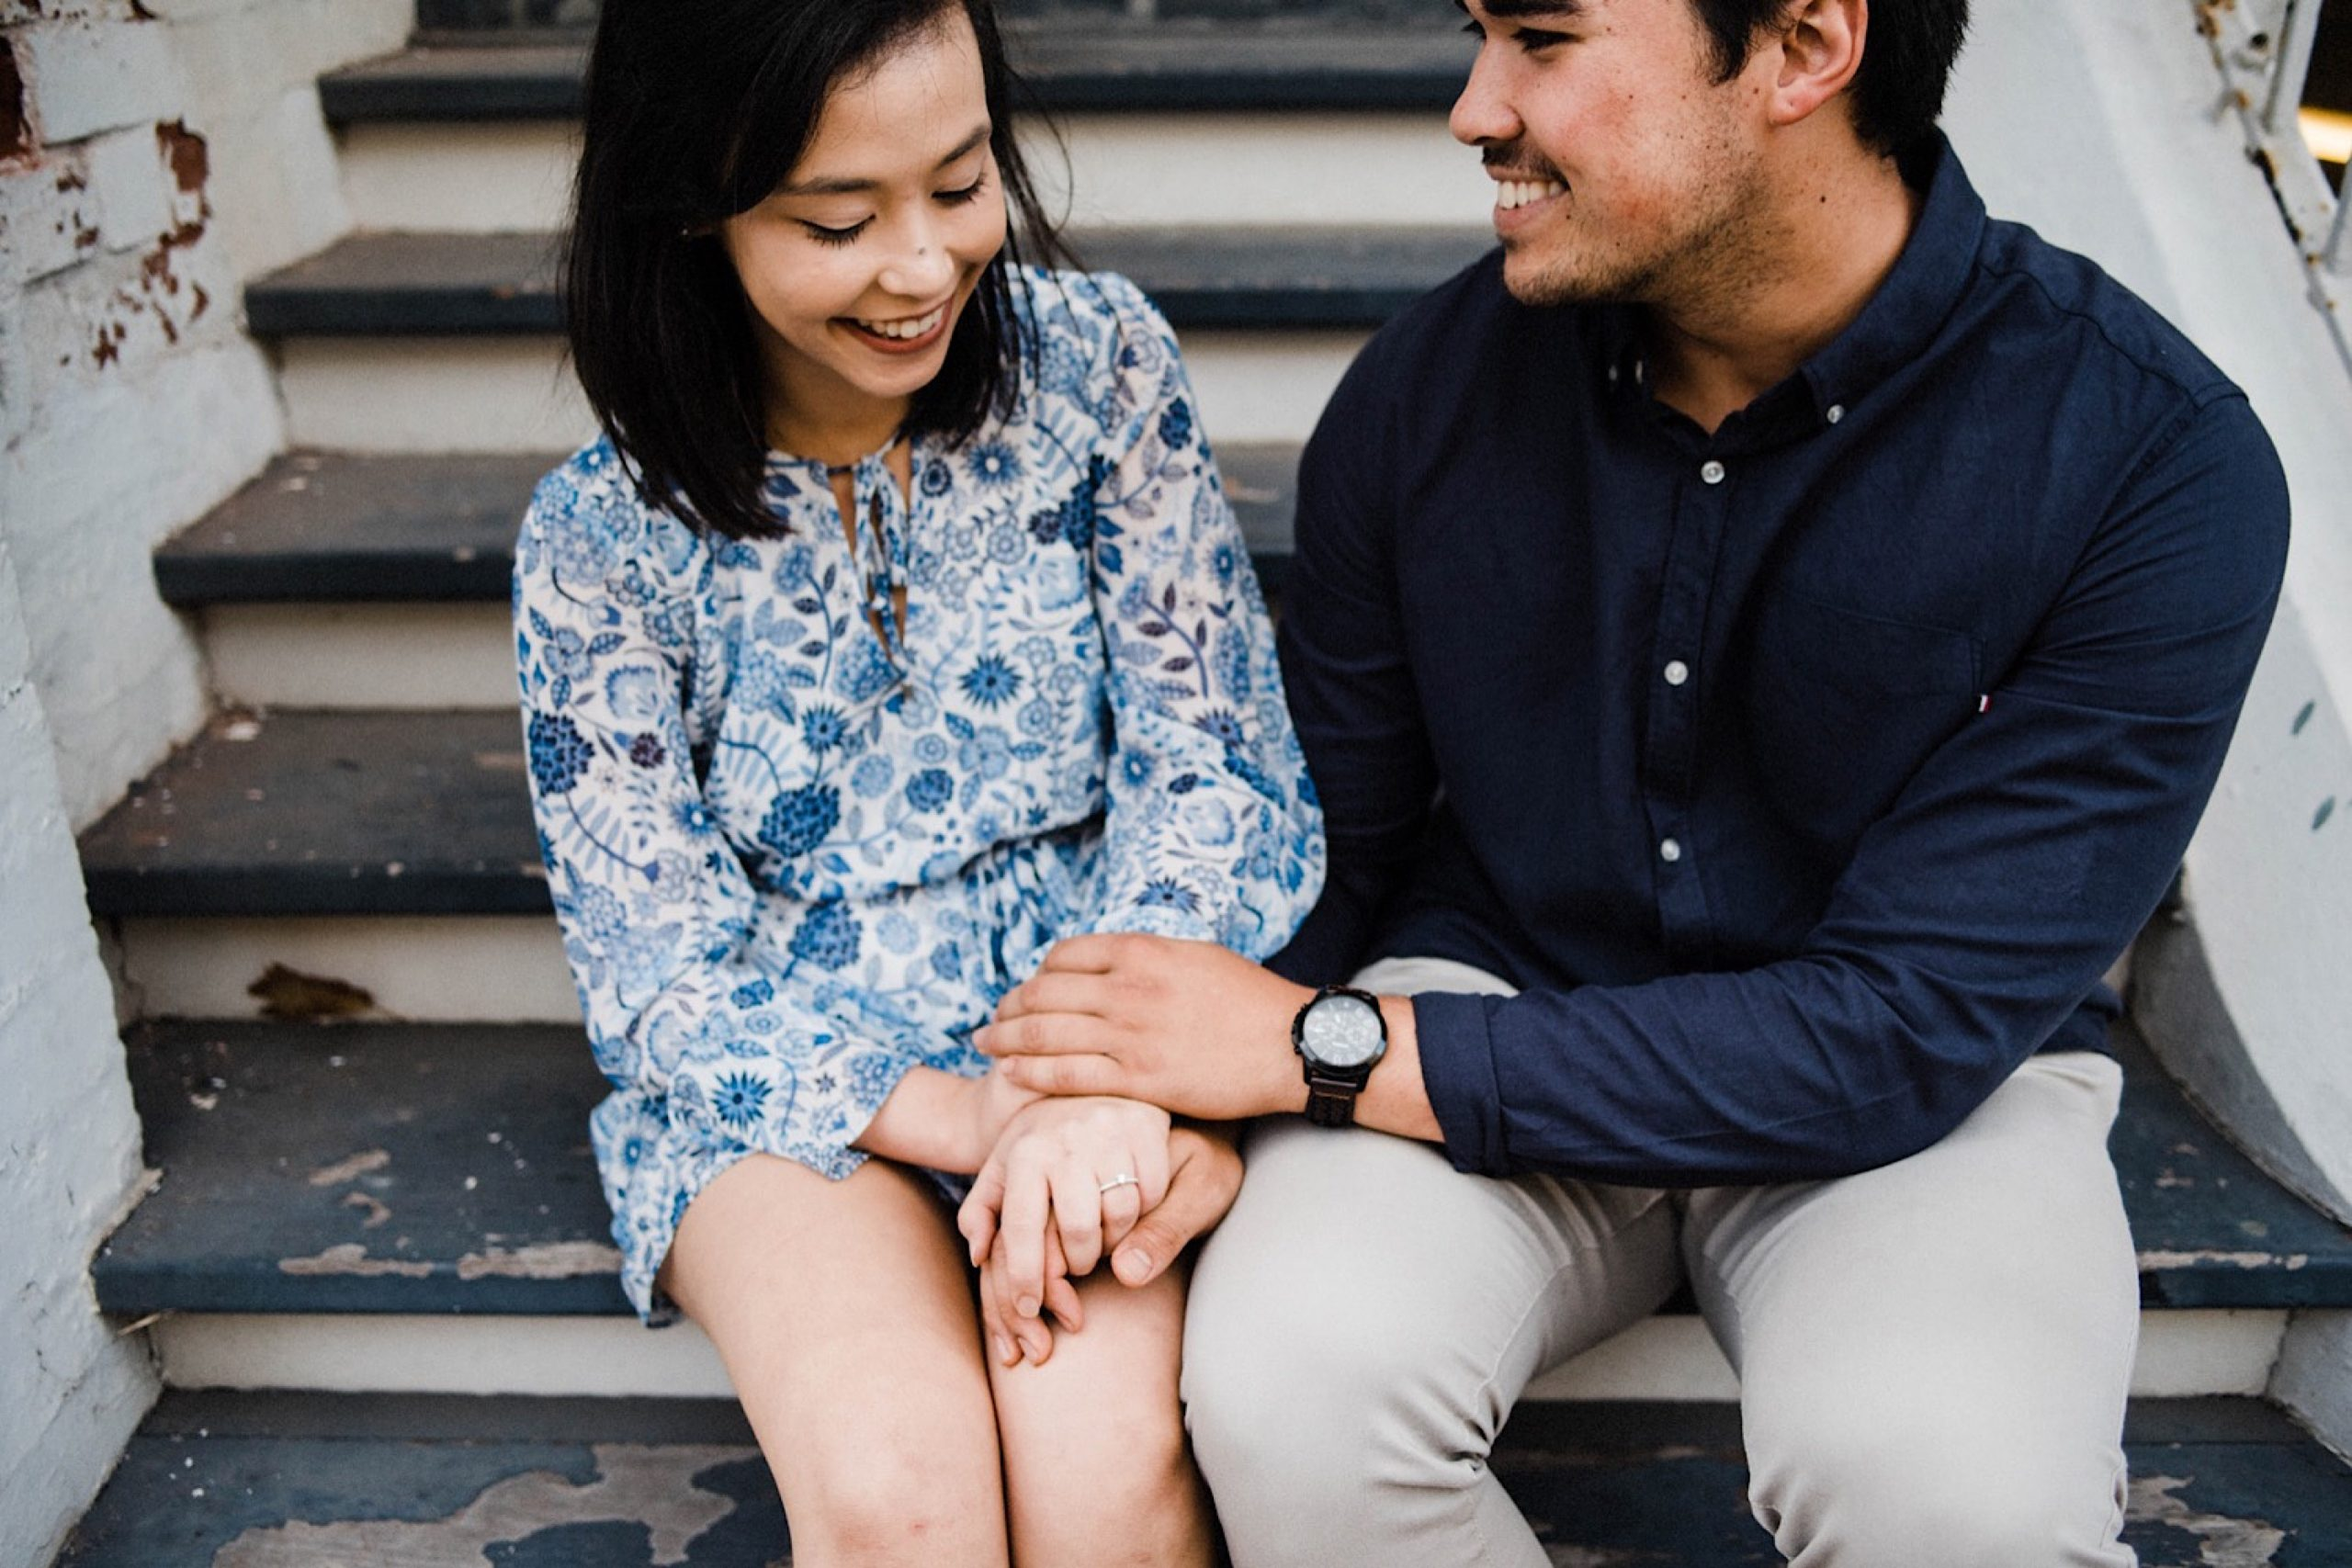 A close-up, romantic engagement portrait of a couple in Fremantle, Australia.